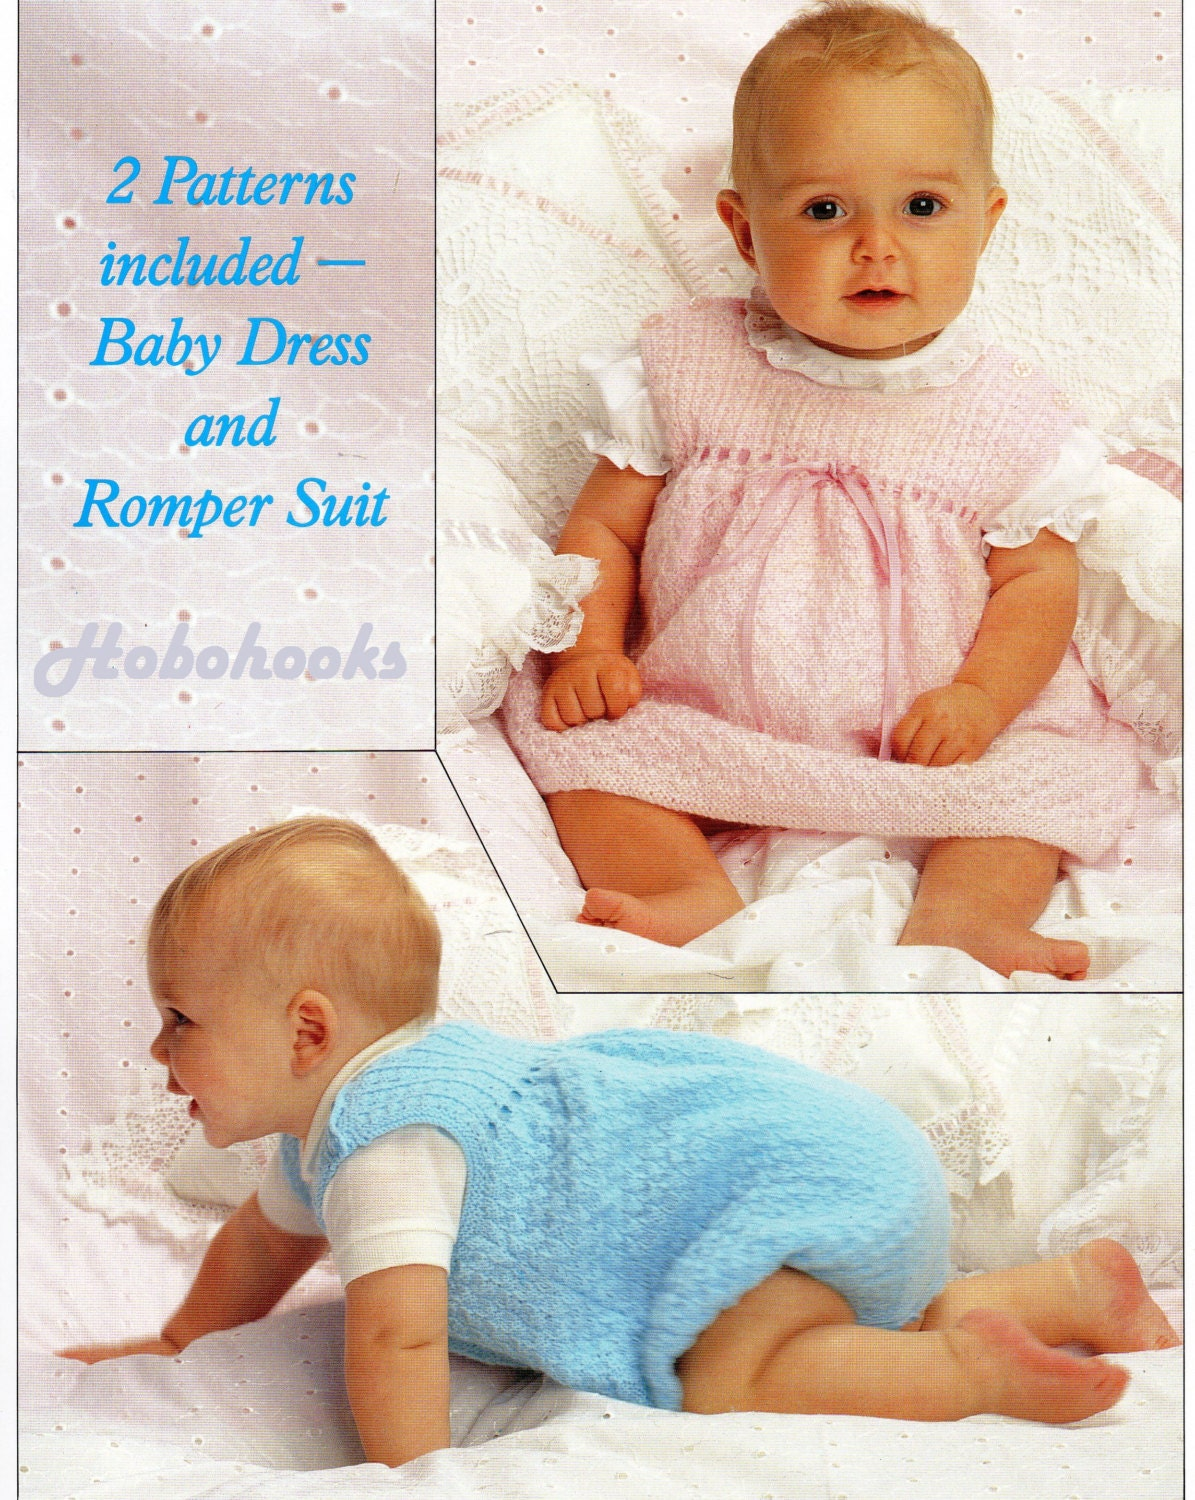 Knitting Patterns For Baby Jumpsuits : Baby knitting pattern baby dress rompers pinafore romper suit